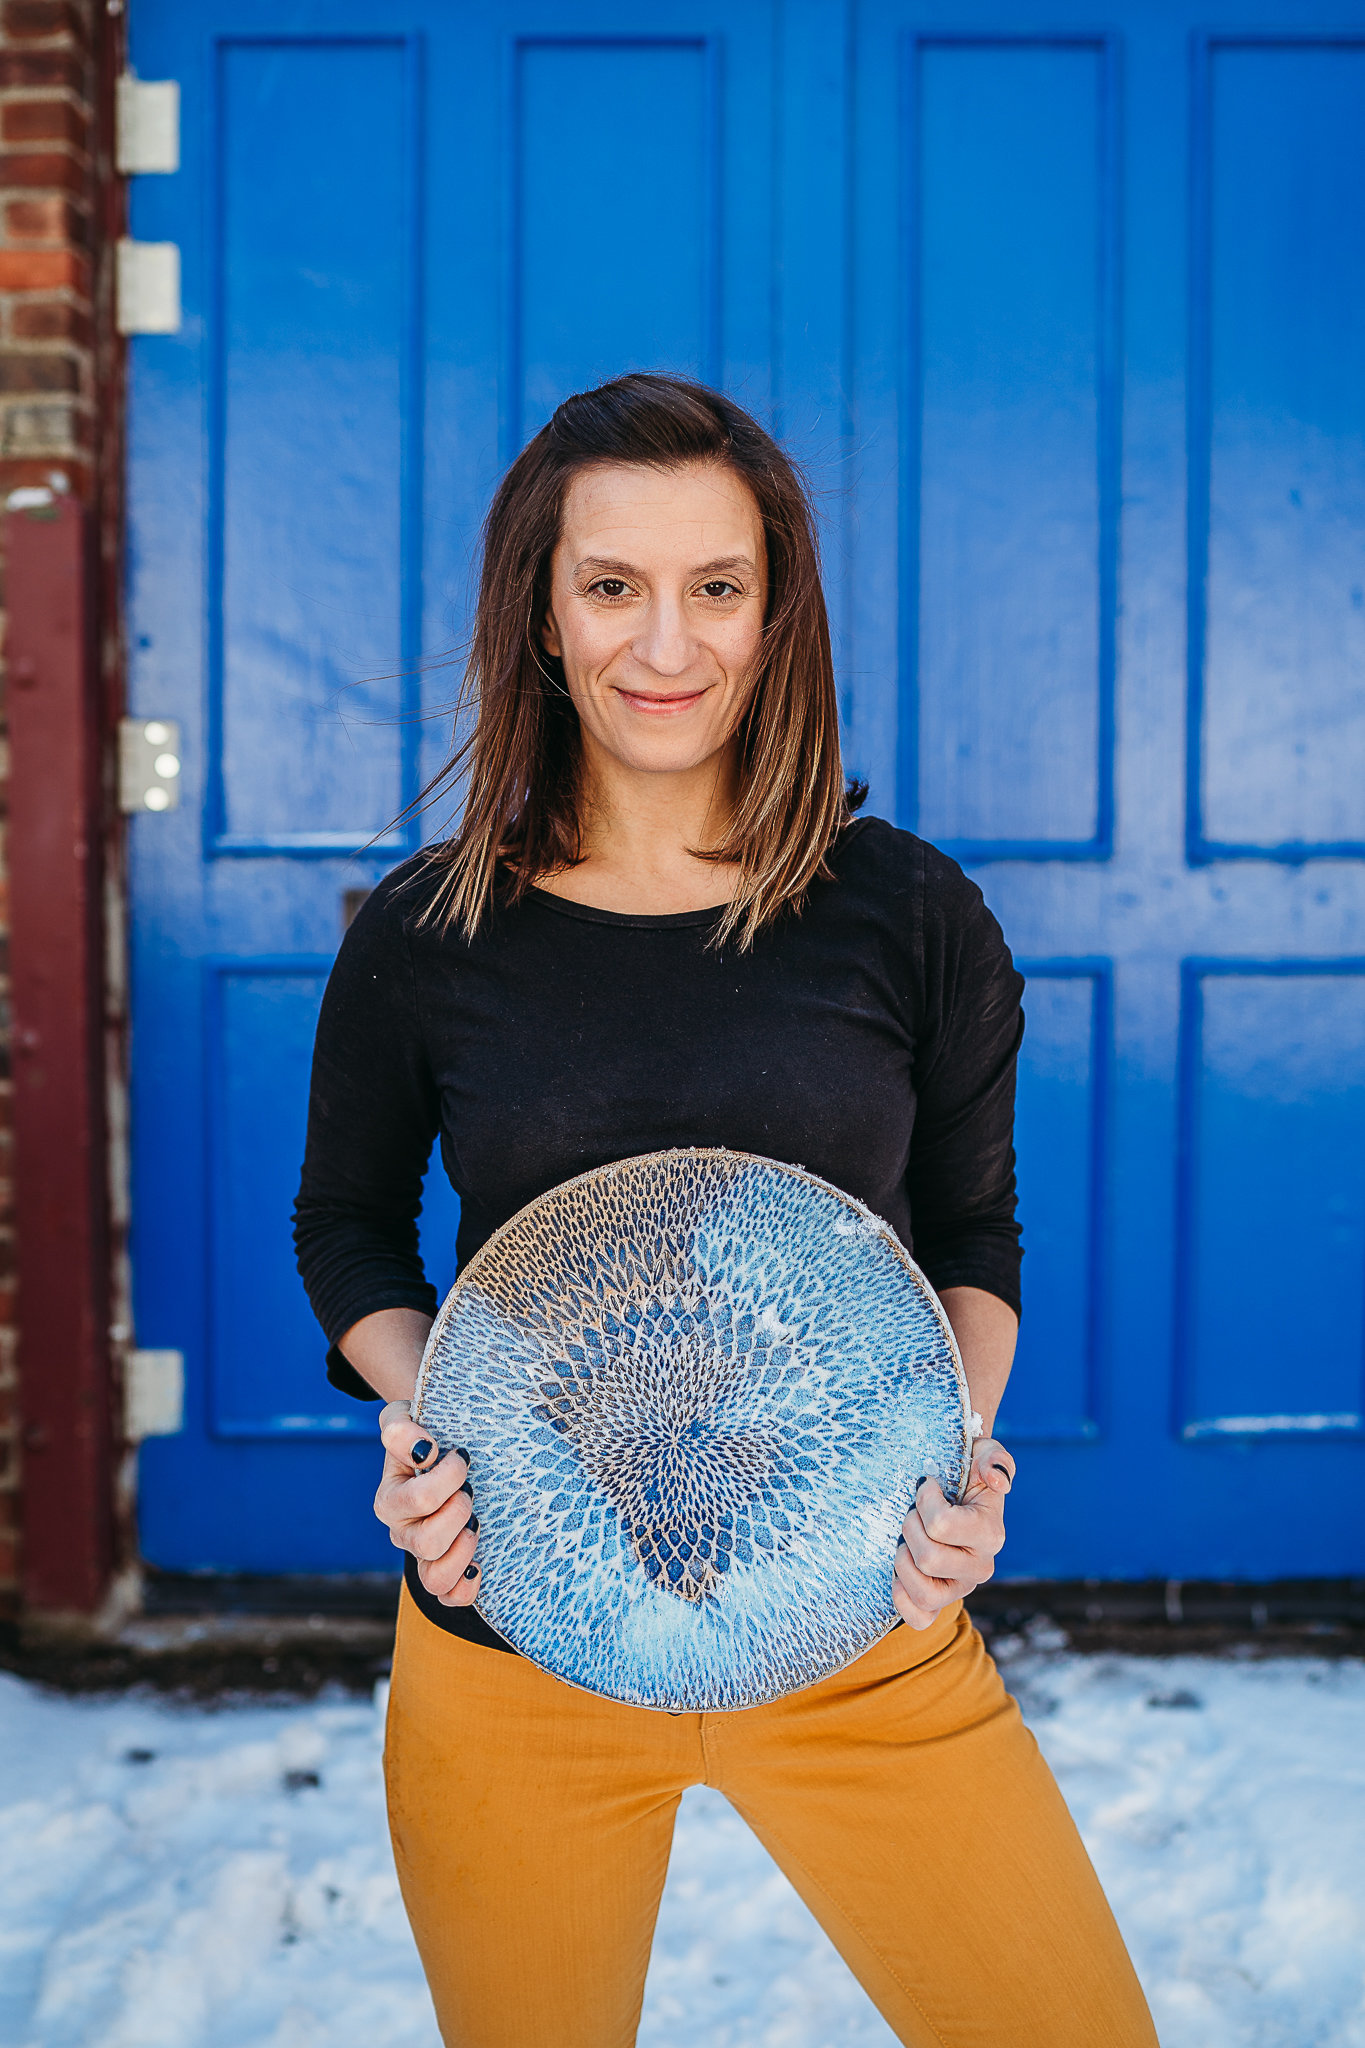 female potter holds platter in front of bright blue door